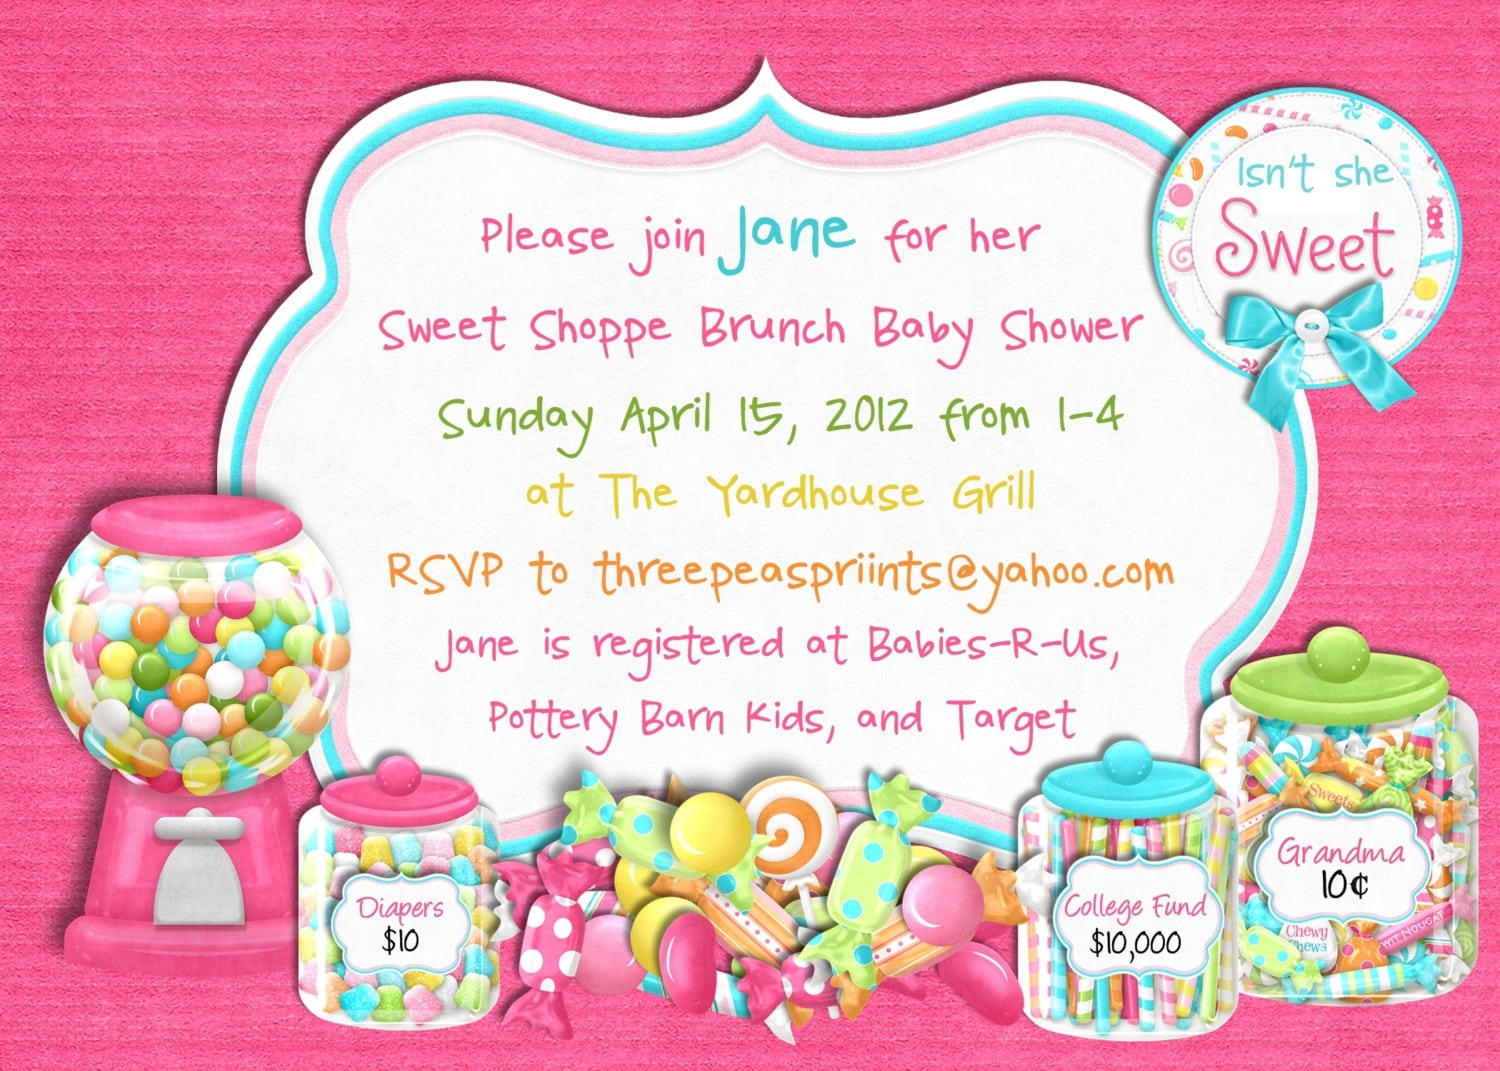 Party City Invitations For Baby Shower   Pumacn Com